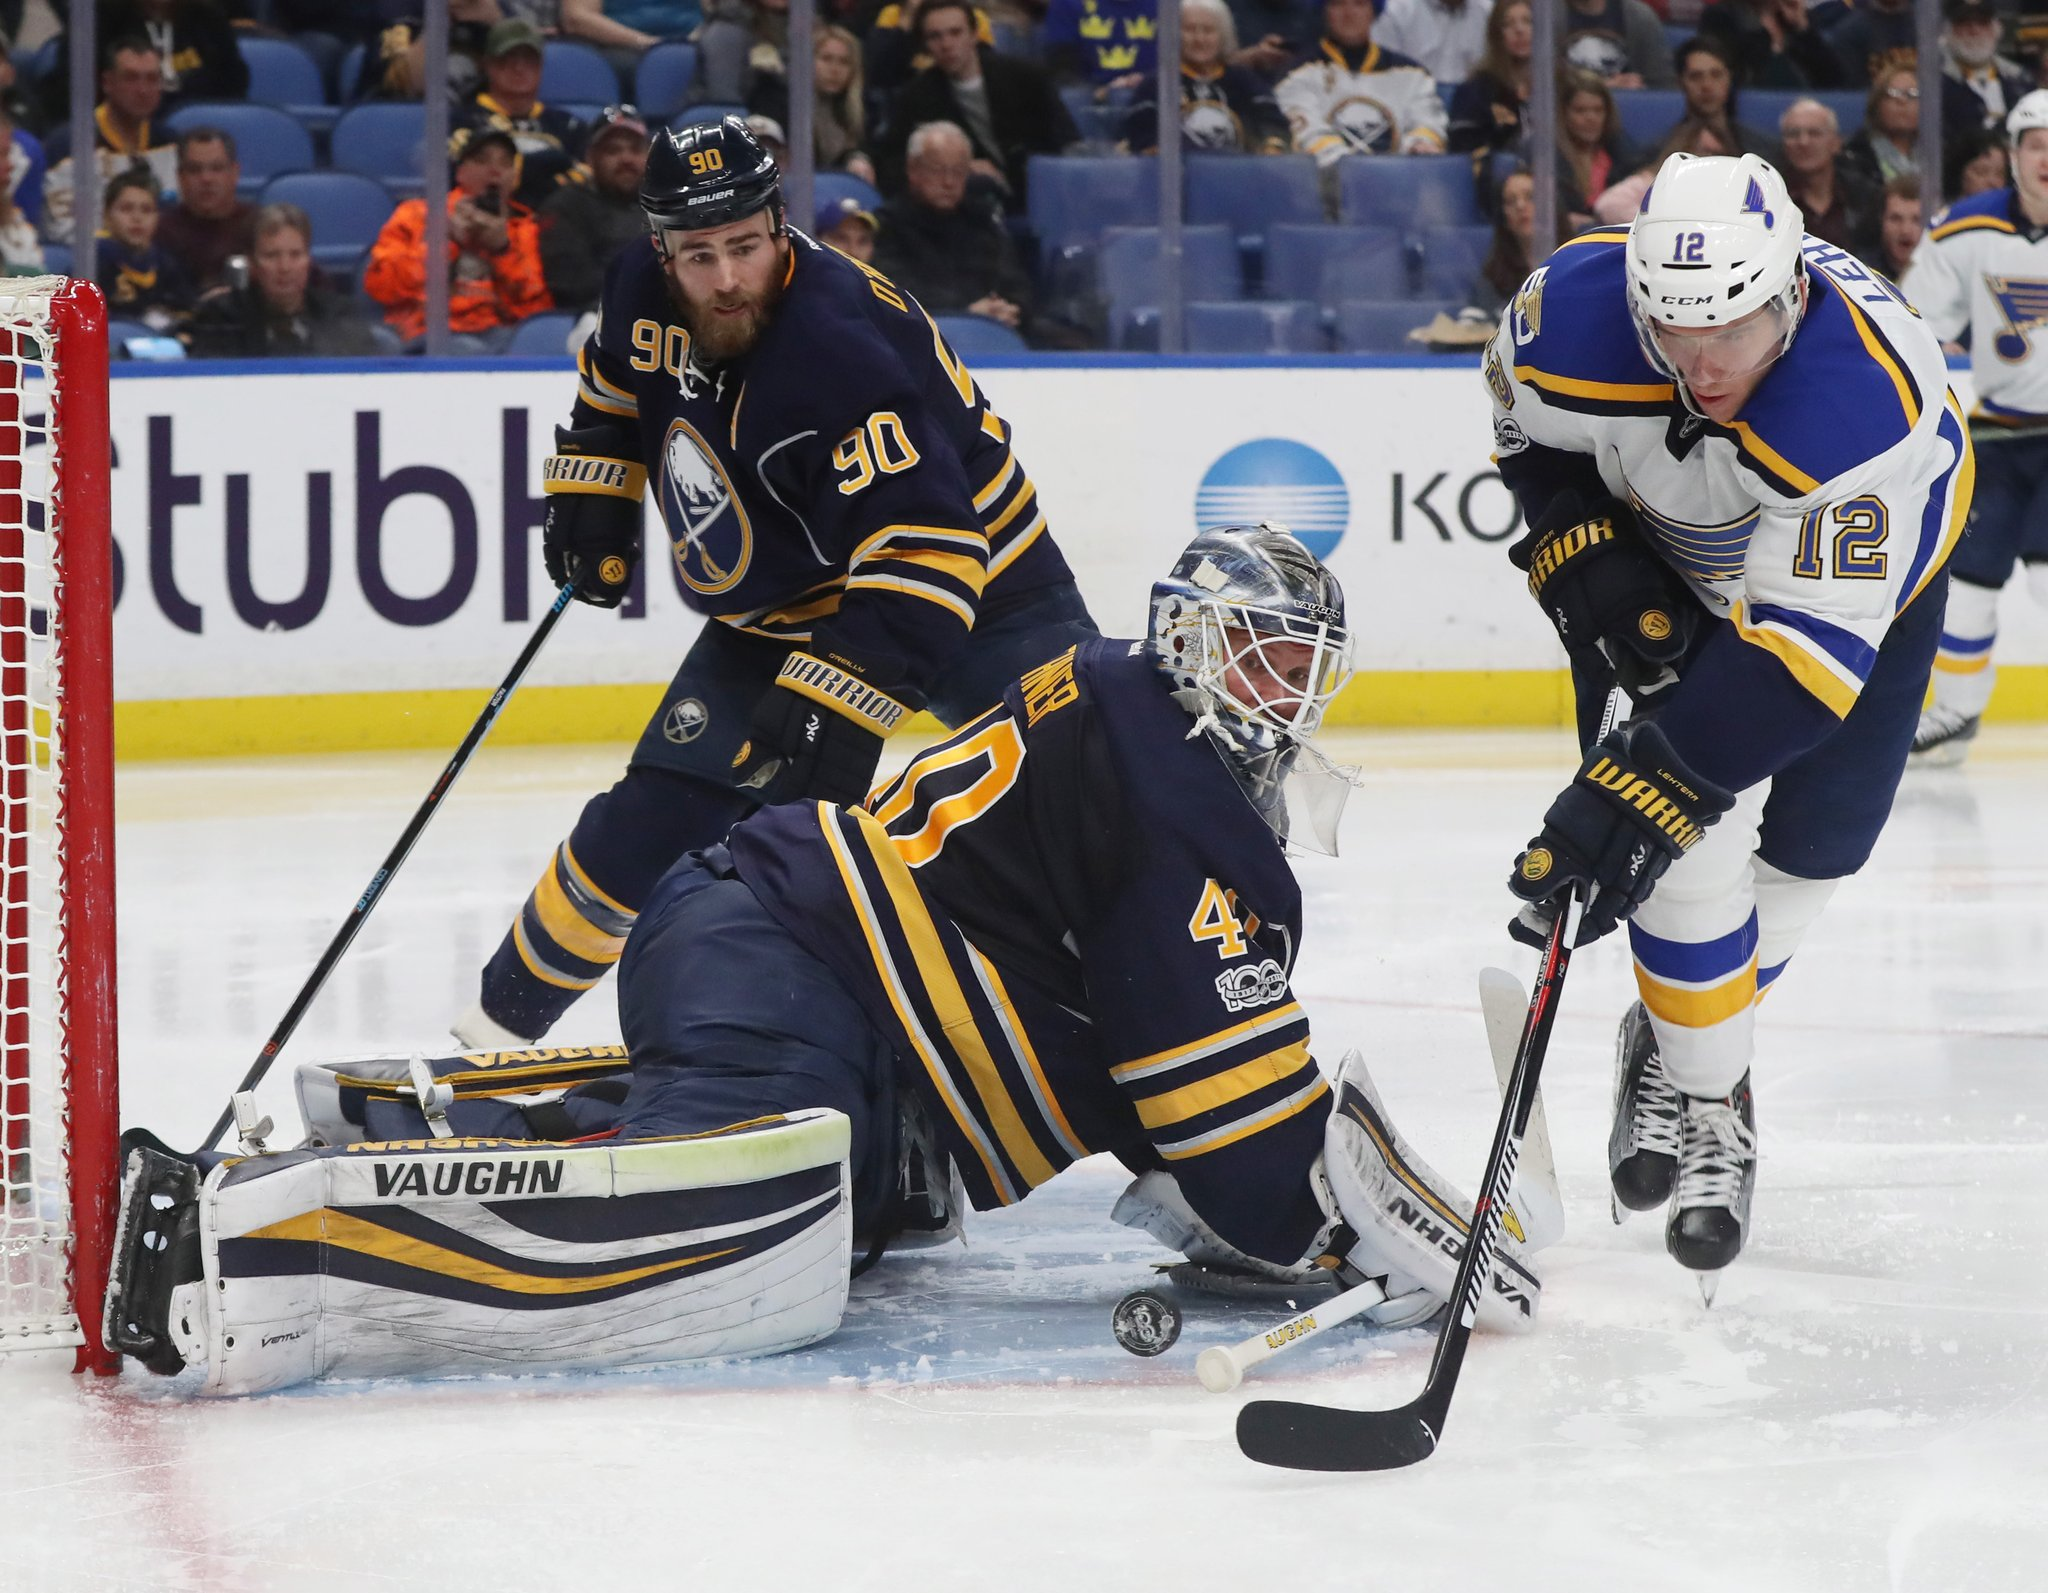 Robin Lehner makes a key save on St. Louis' Jori Lehtera in the first minute of the second period (James P. McCoy/Buffalo News).